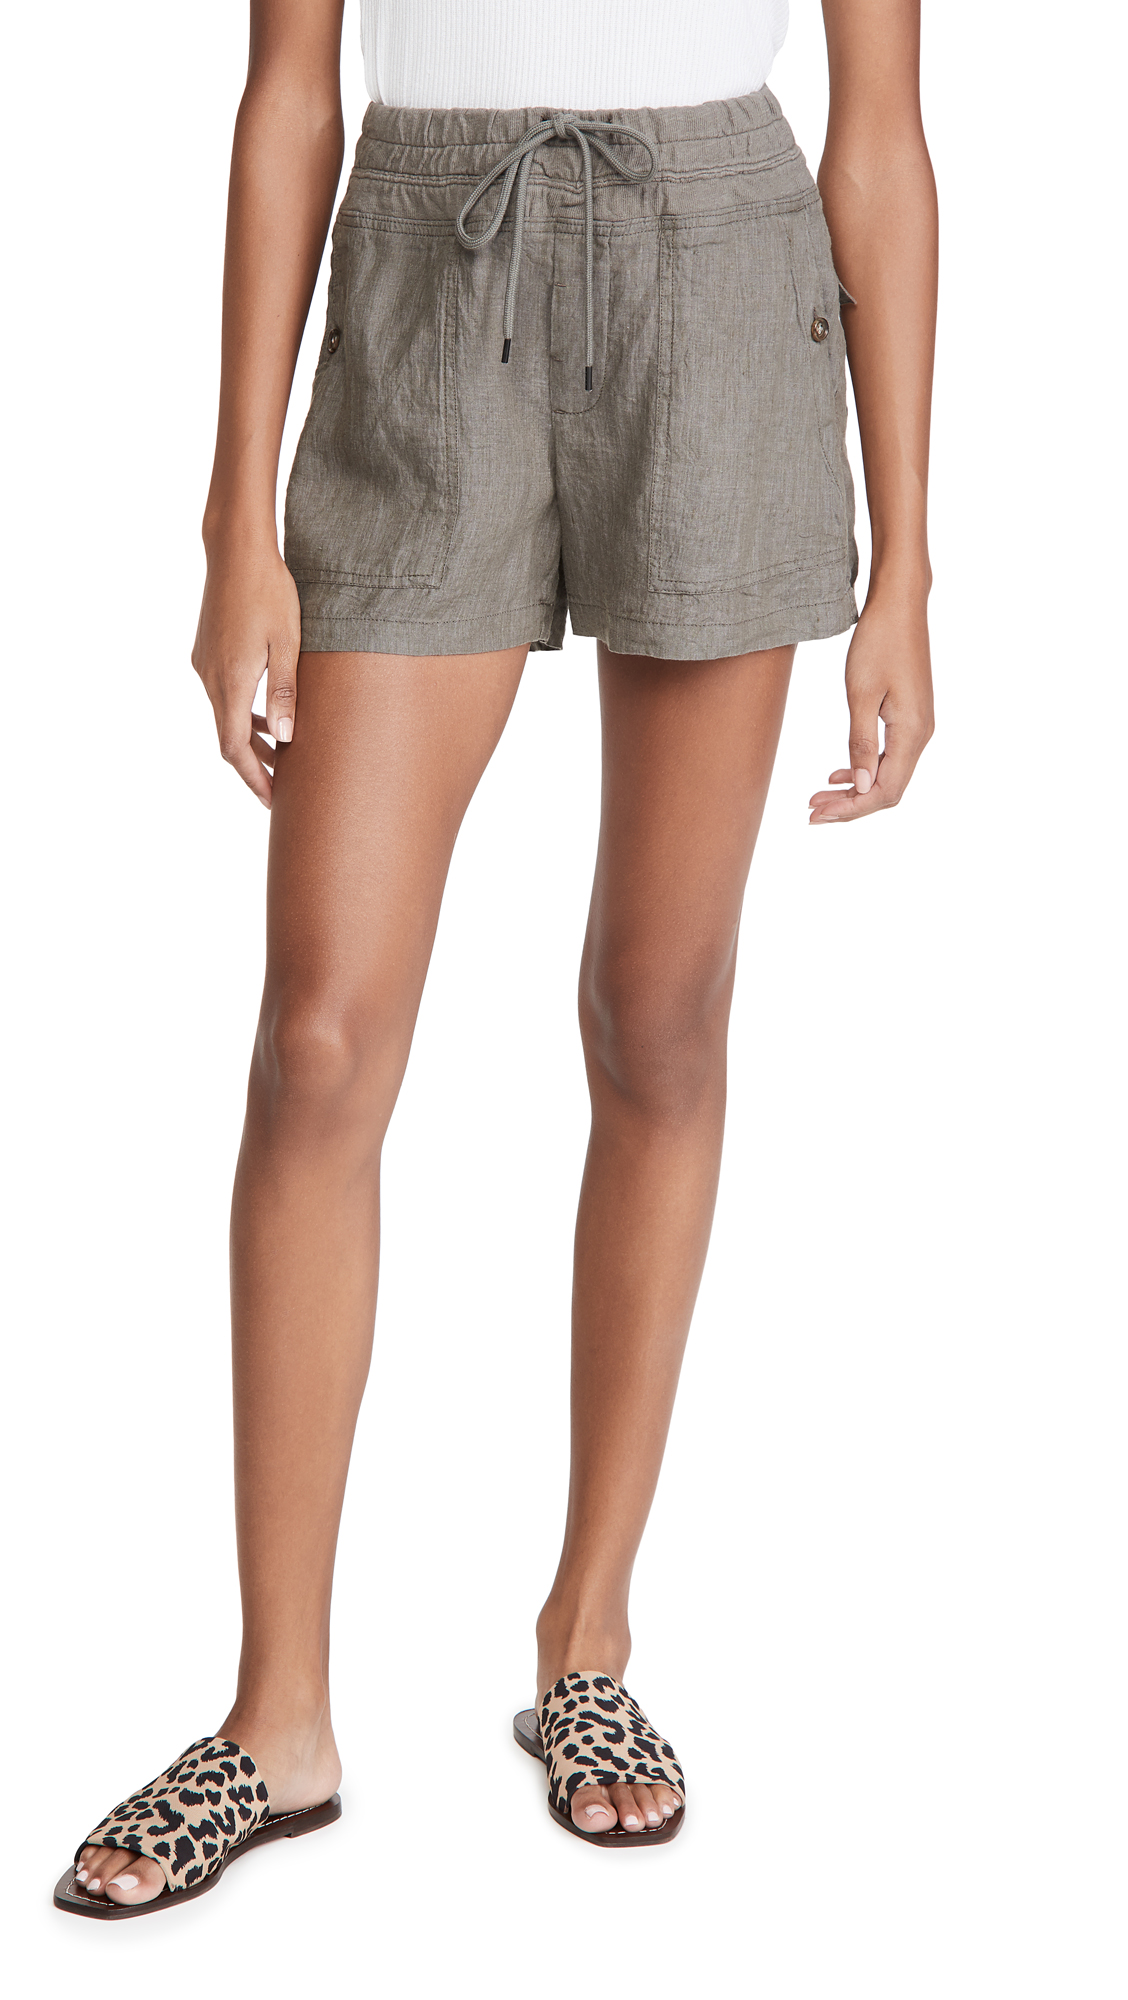 James Perse MILITARY SHORTS